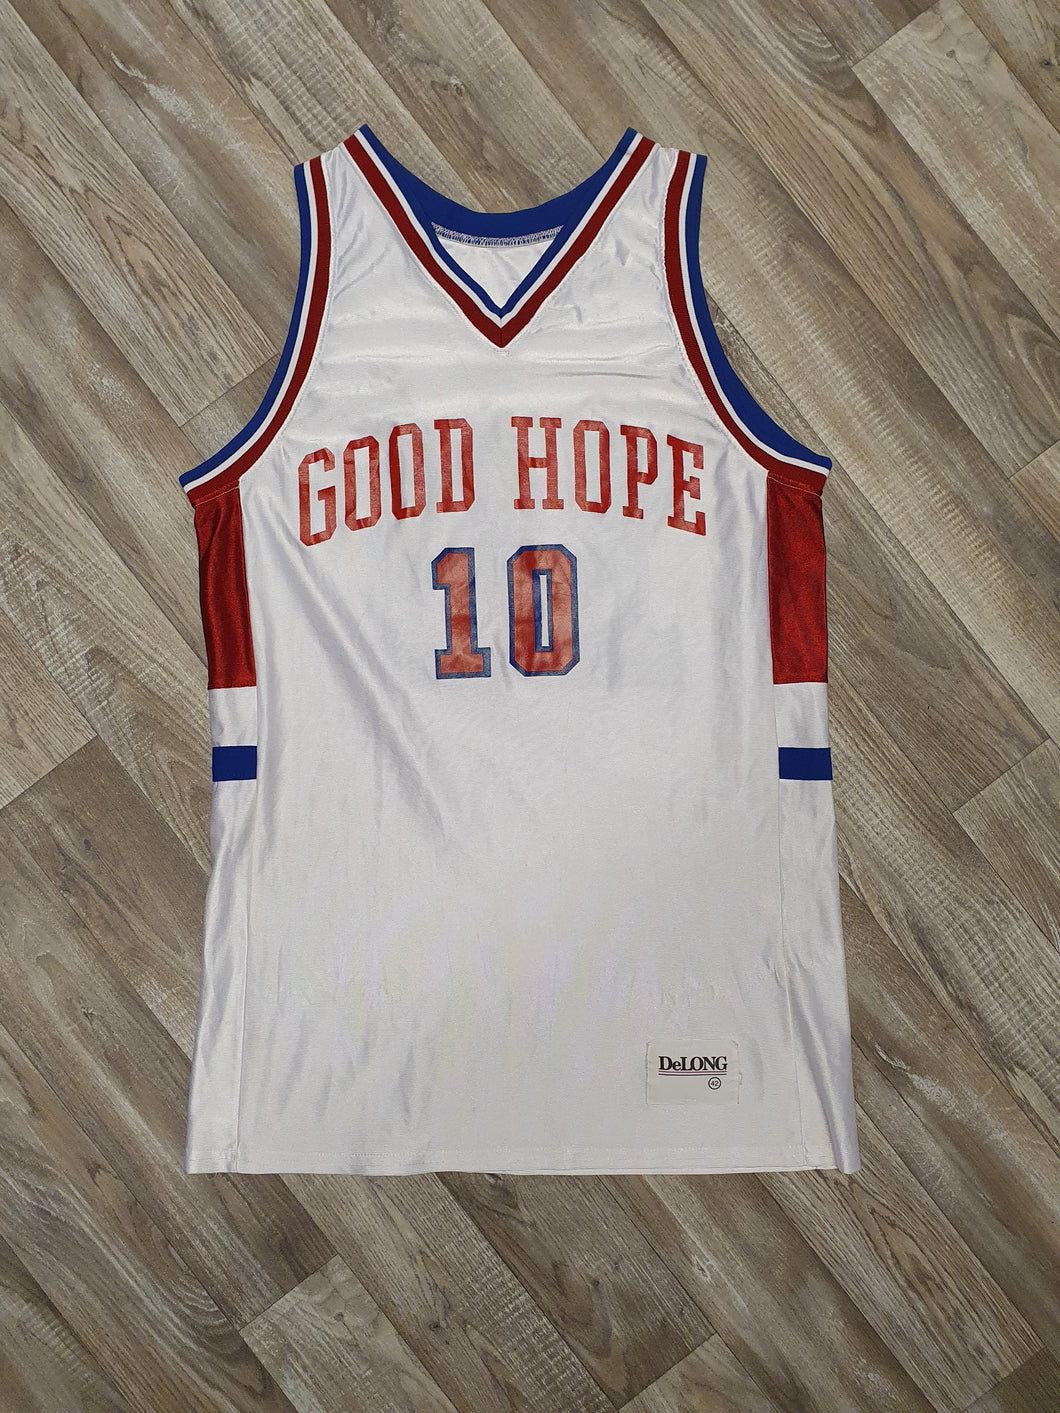 Good Hope Raiders Jersey Size Large